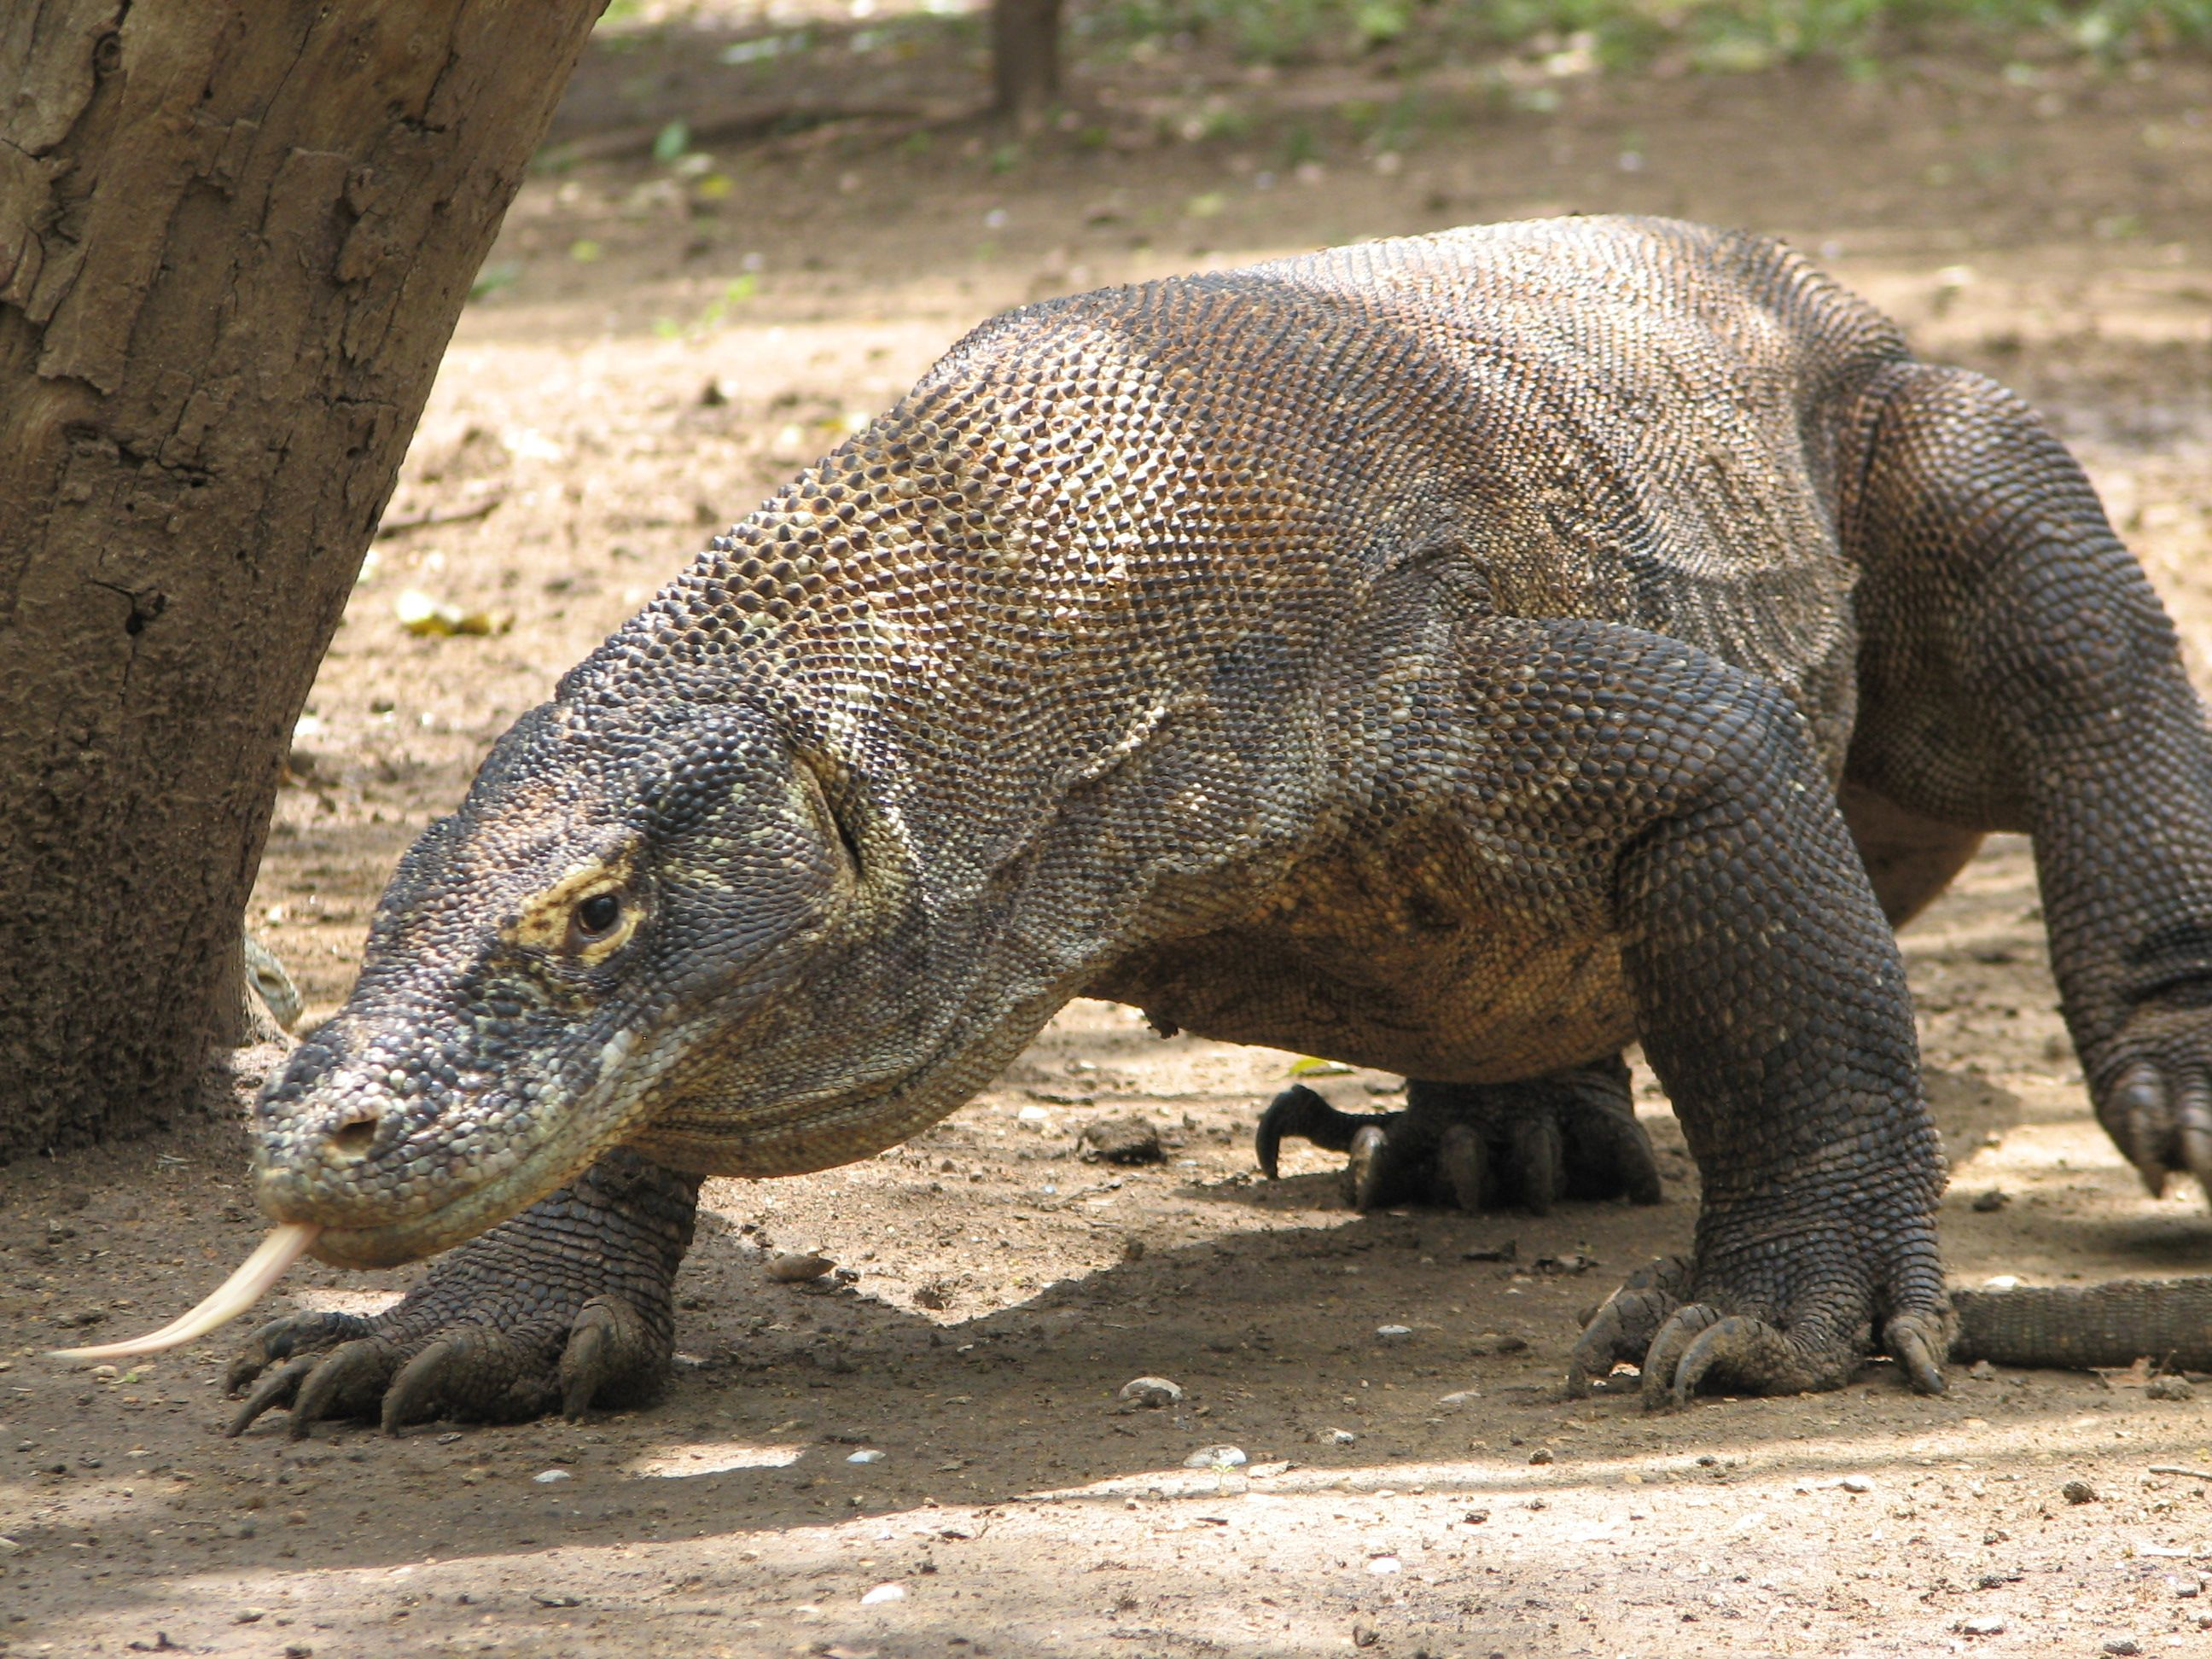 Life Cycle and Reproduction - Komodo Dragon | Sharks and Comodo ...